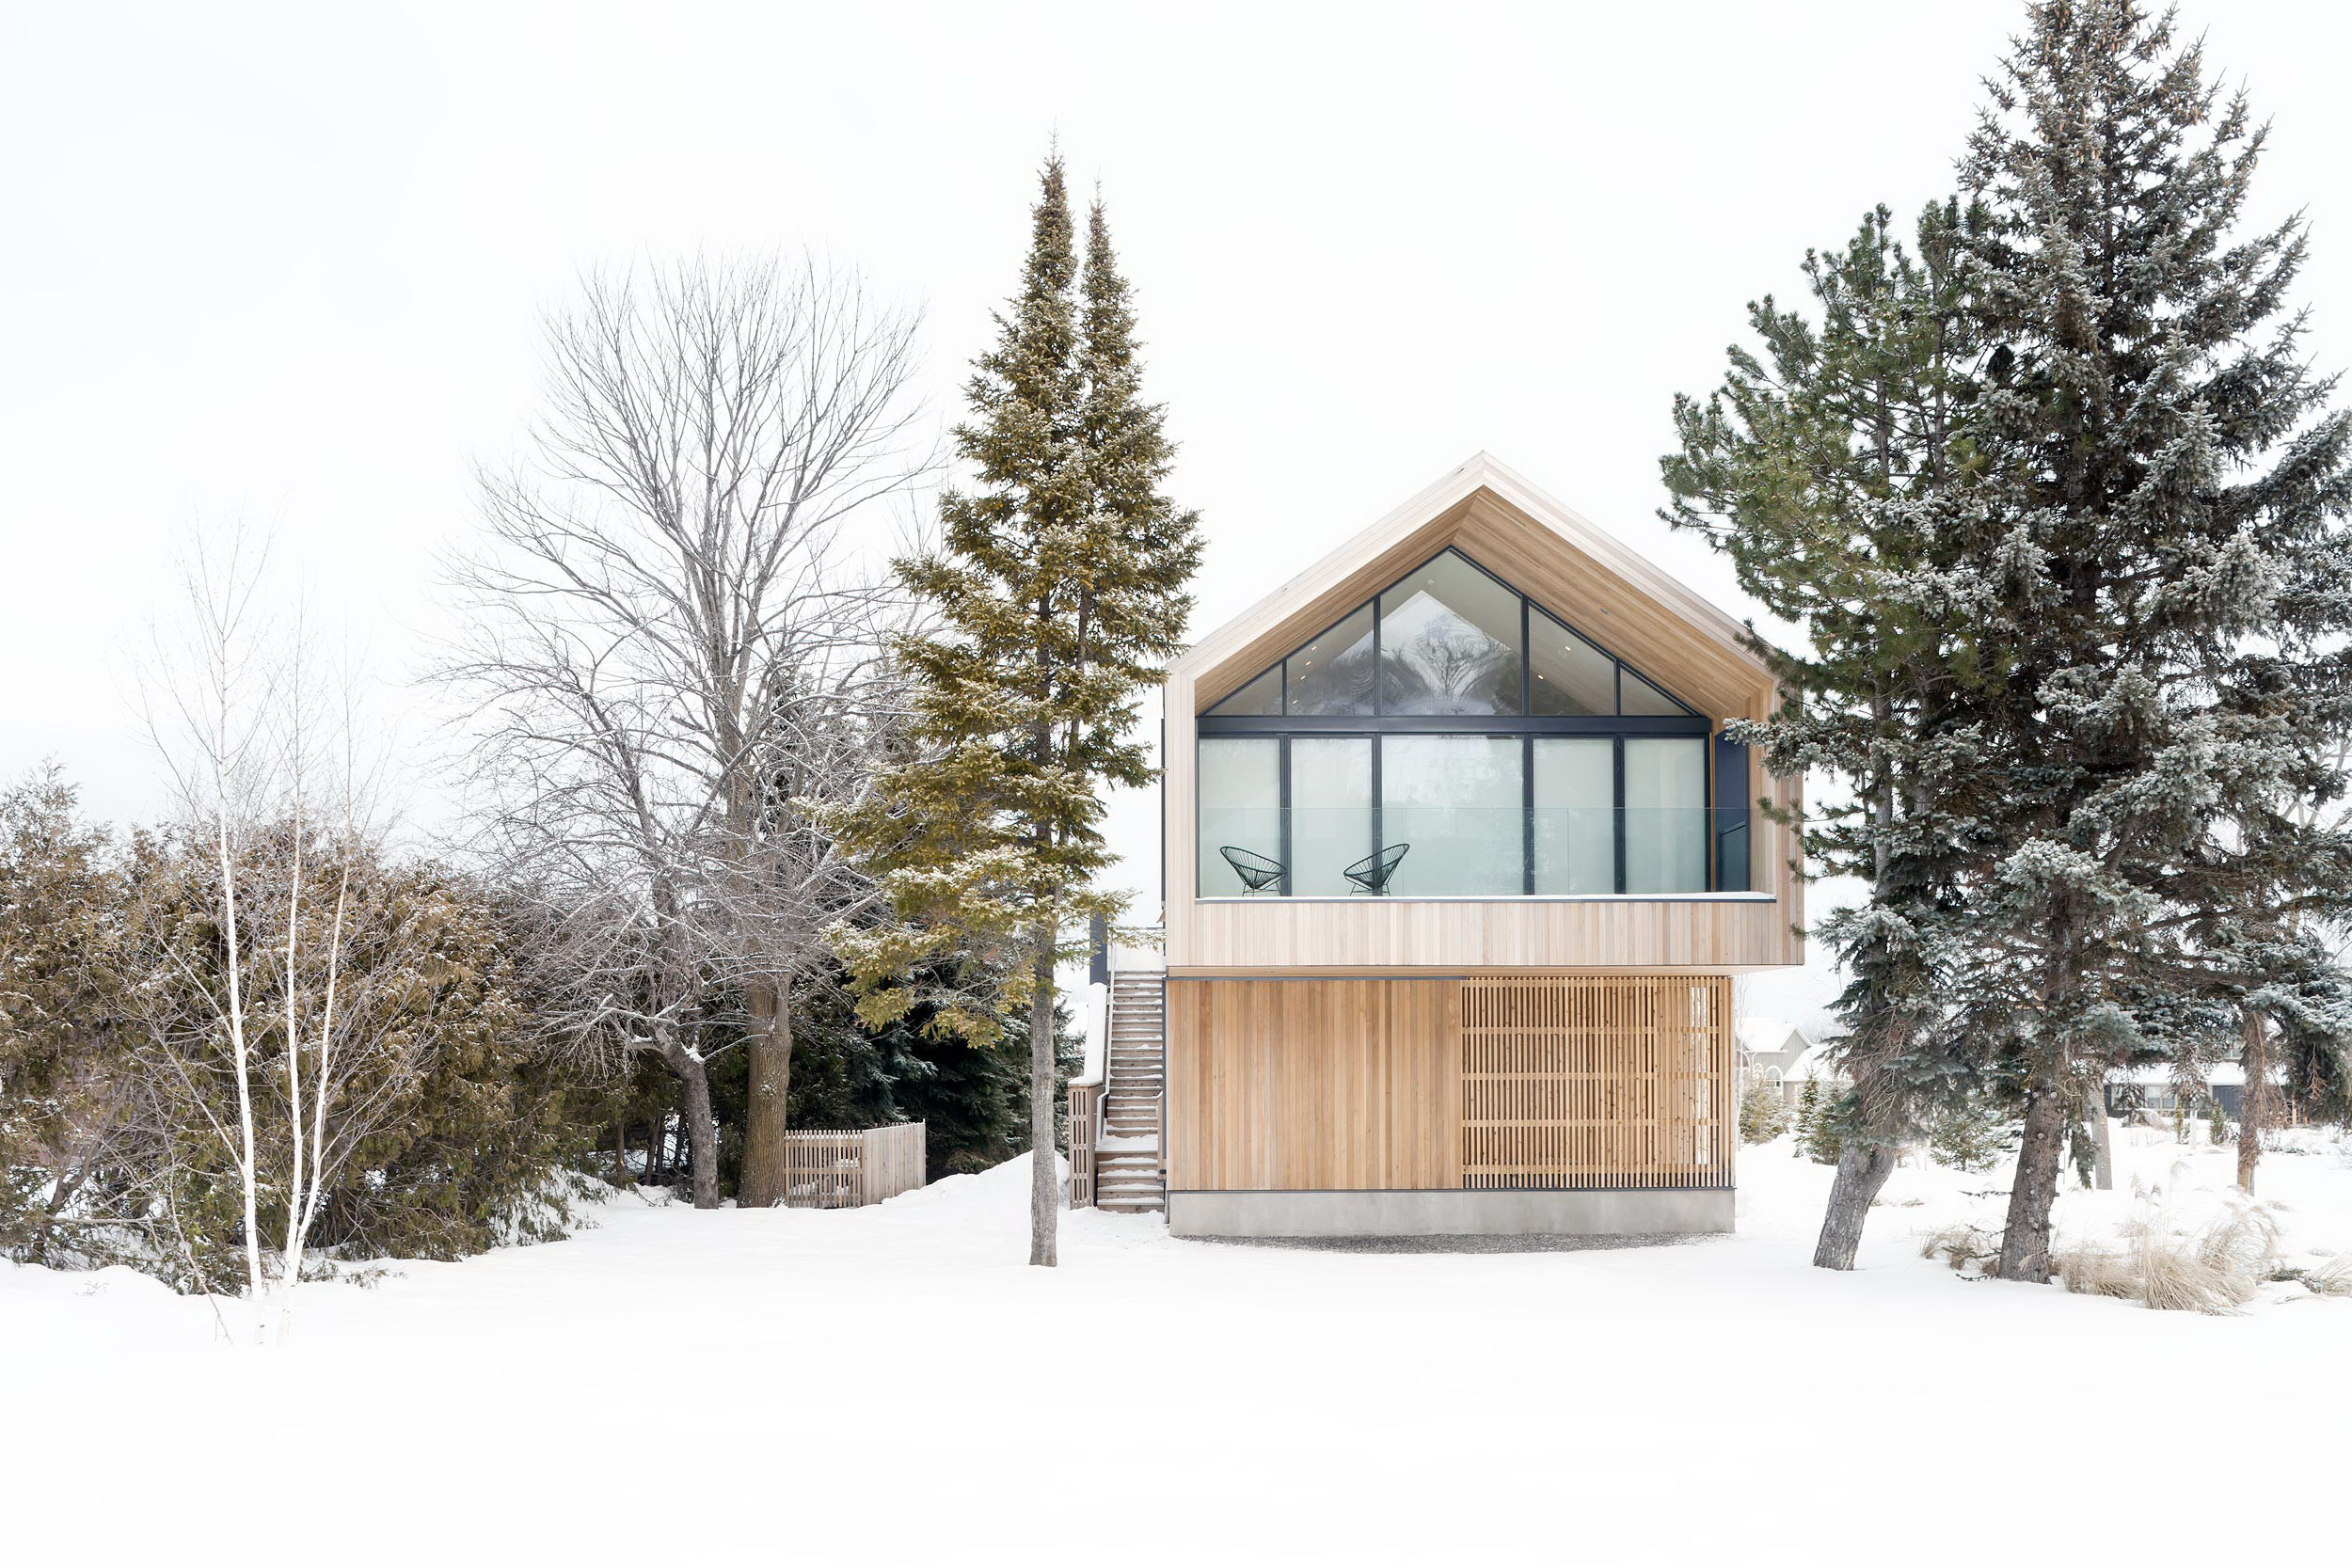 Maison Glissade – Ski Chalet by Akb Architects